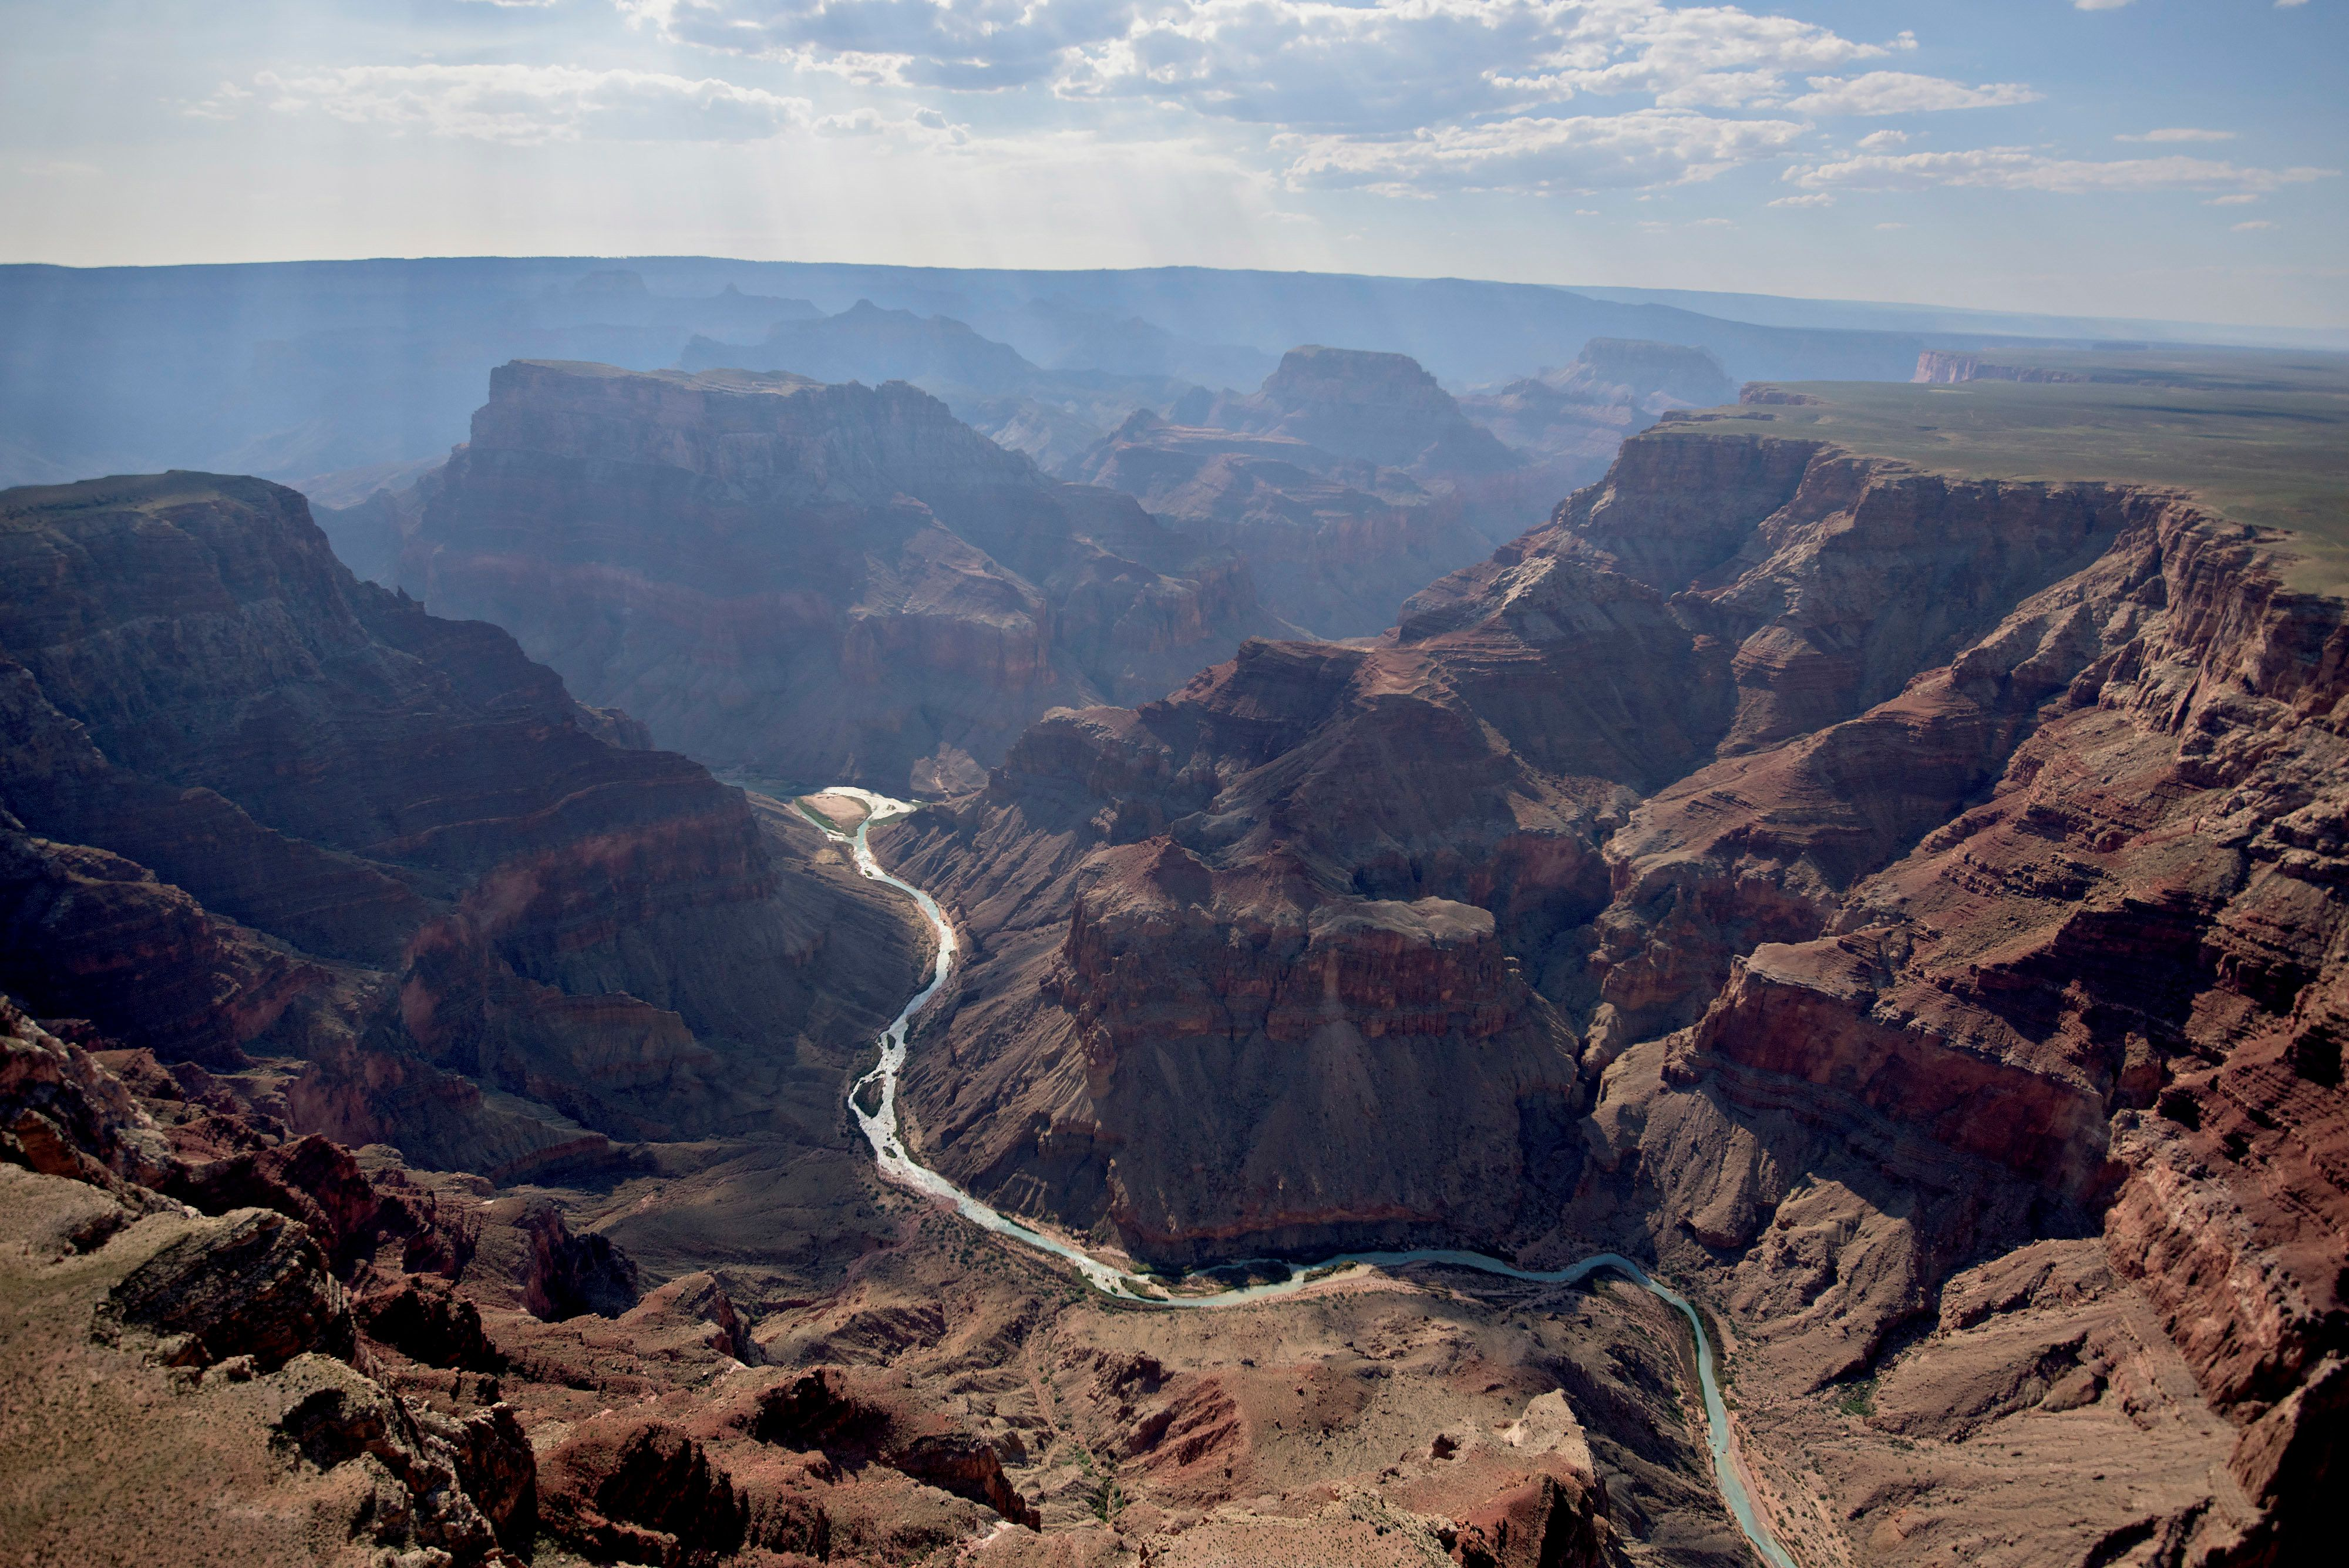 The confluence of the Little Colorado River, foreground, and the Colorado River is seen in Grand Canyon National Park in this aerial photograph taken above Grand Canyon, Arizona, U.S., on Thursday, June 25, 2015. Developers Confluence Partners have proposed a 420-acre development along the canyon's rim. The Grand Canyon has seen a 20 percent increase in visitation through the first quarter of this year, according to a park spokesperson. Photographer: Daniel Acker/Bloomberg via Getty Images